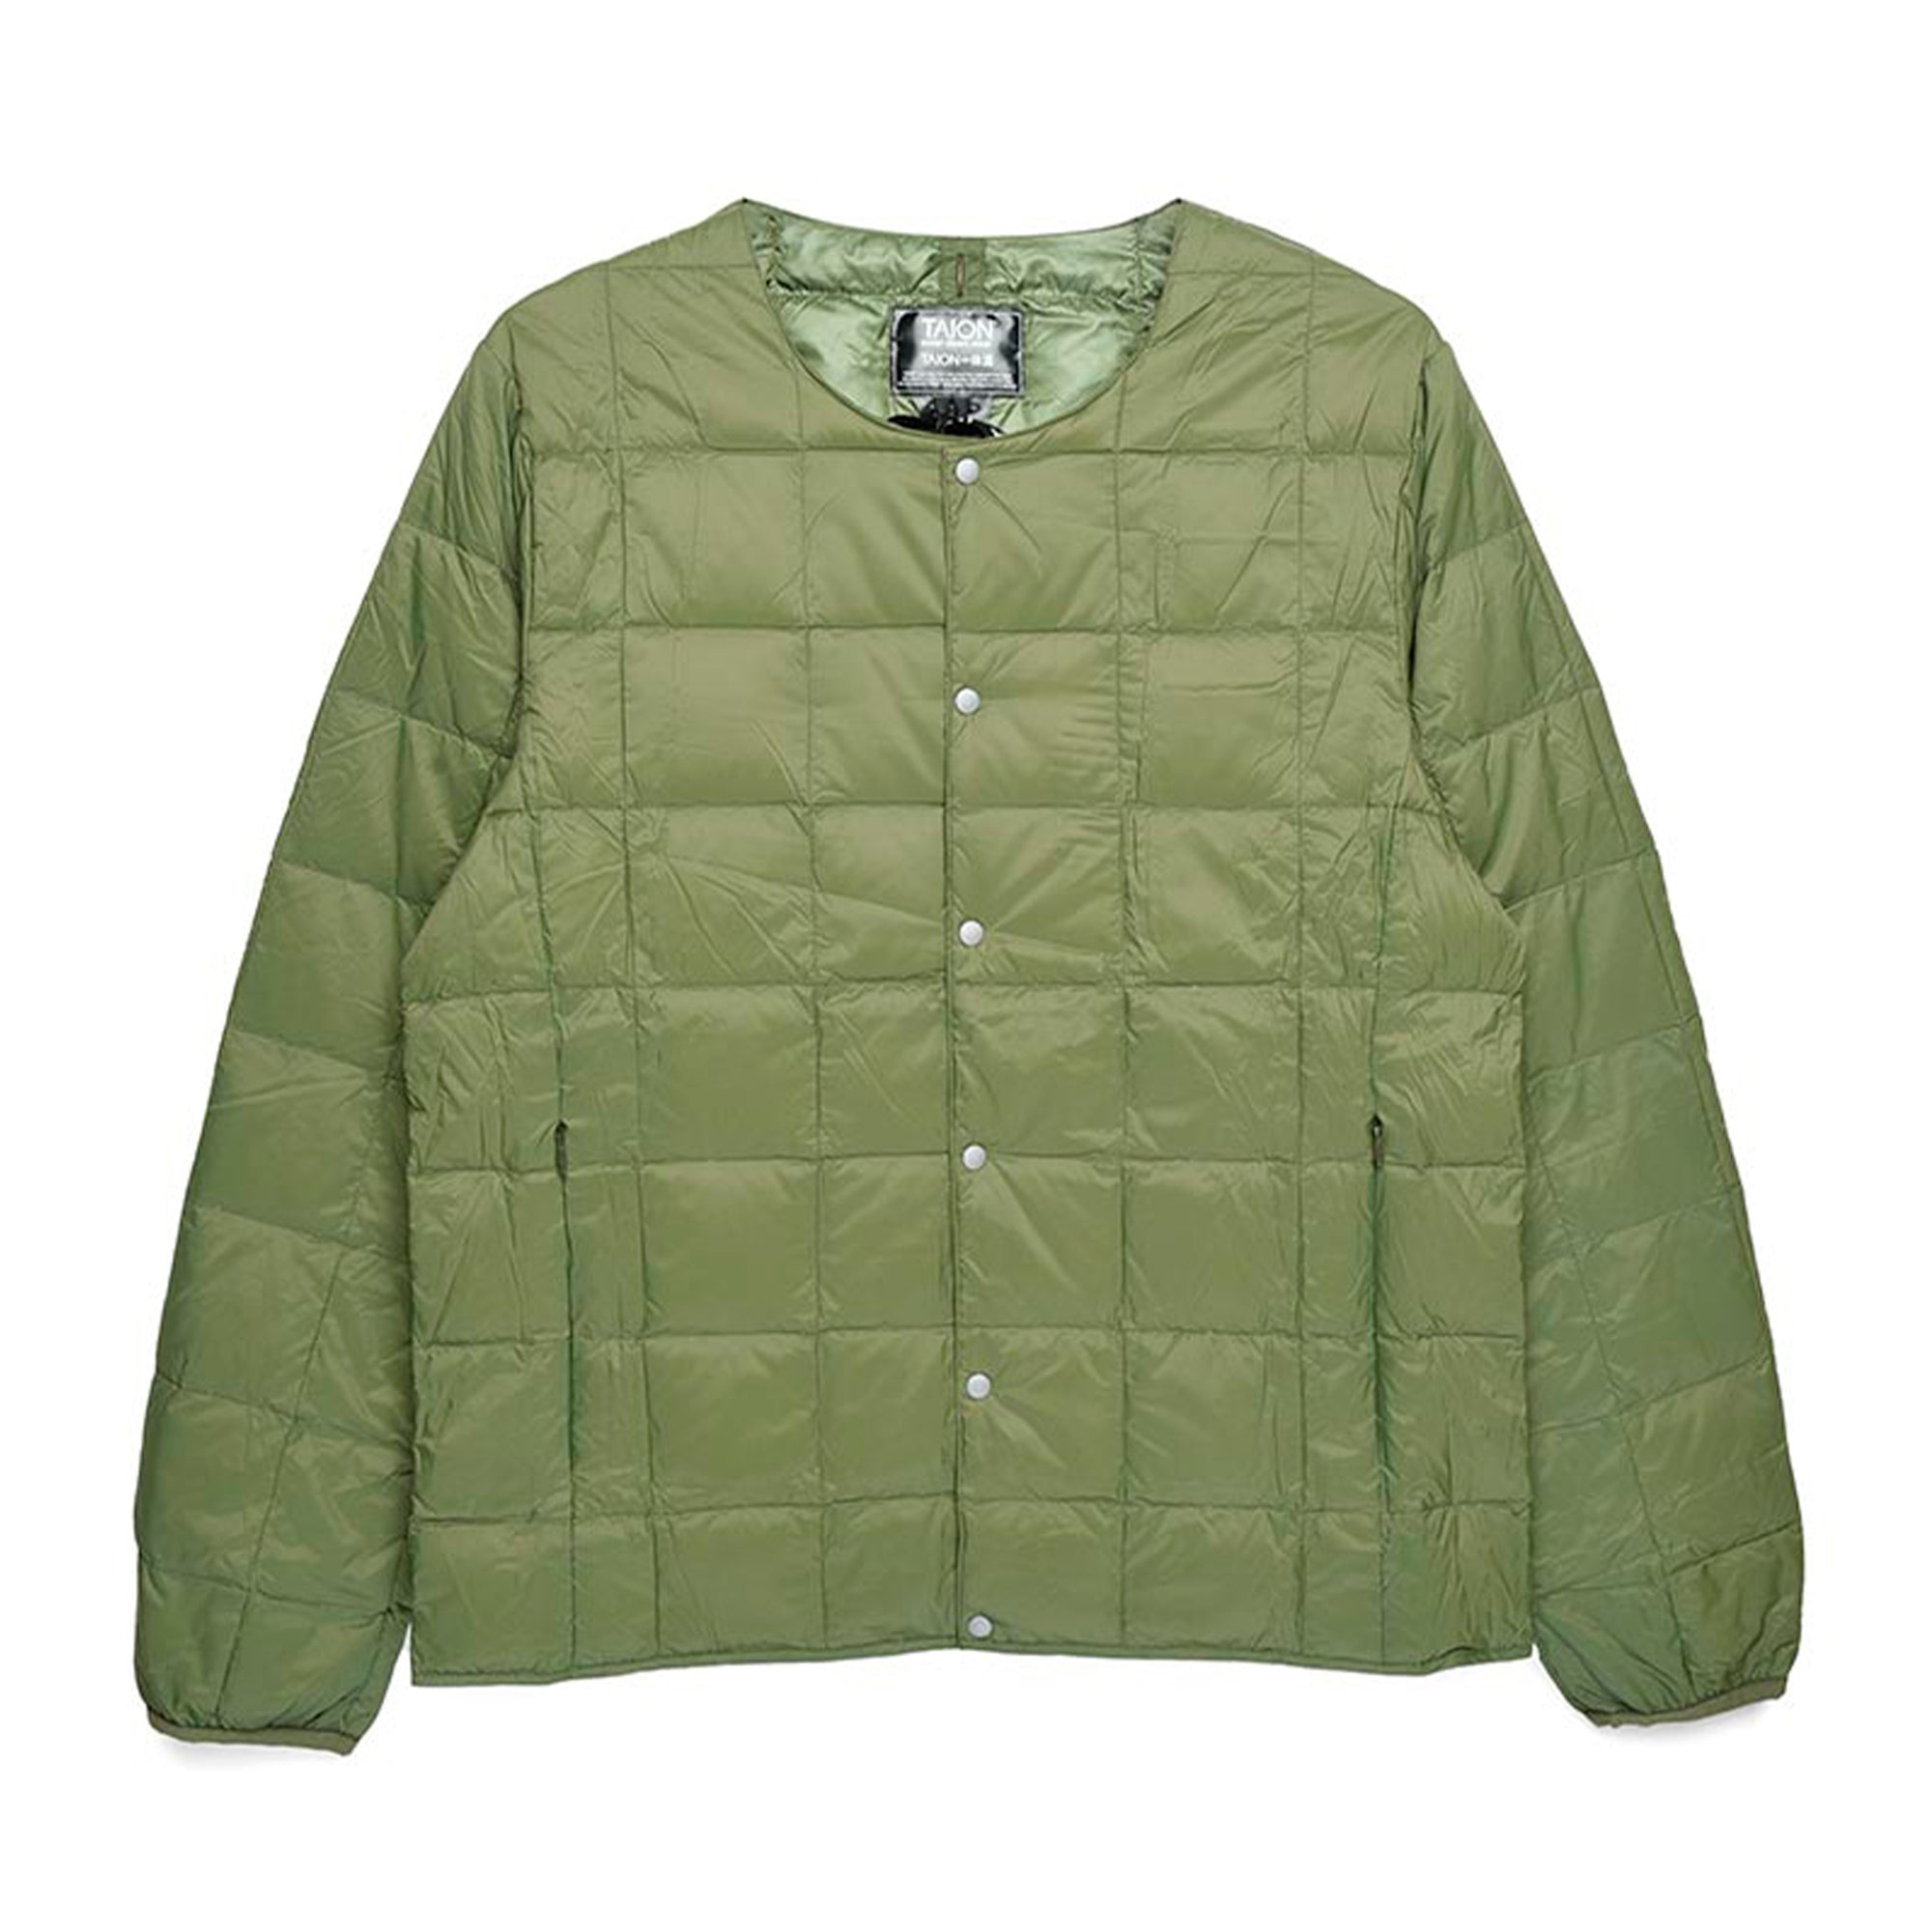 Taion Crew Neck Button Down Jacket: Olive - The Union Project